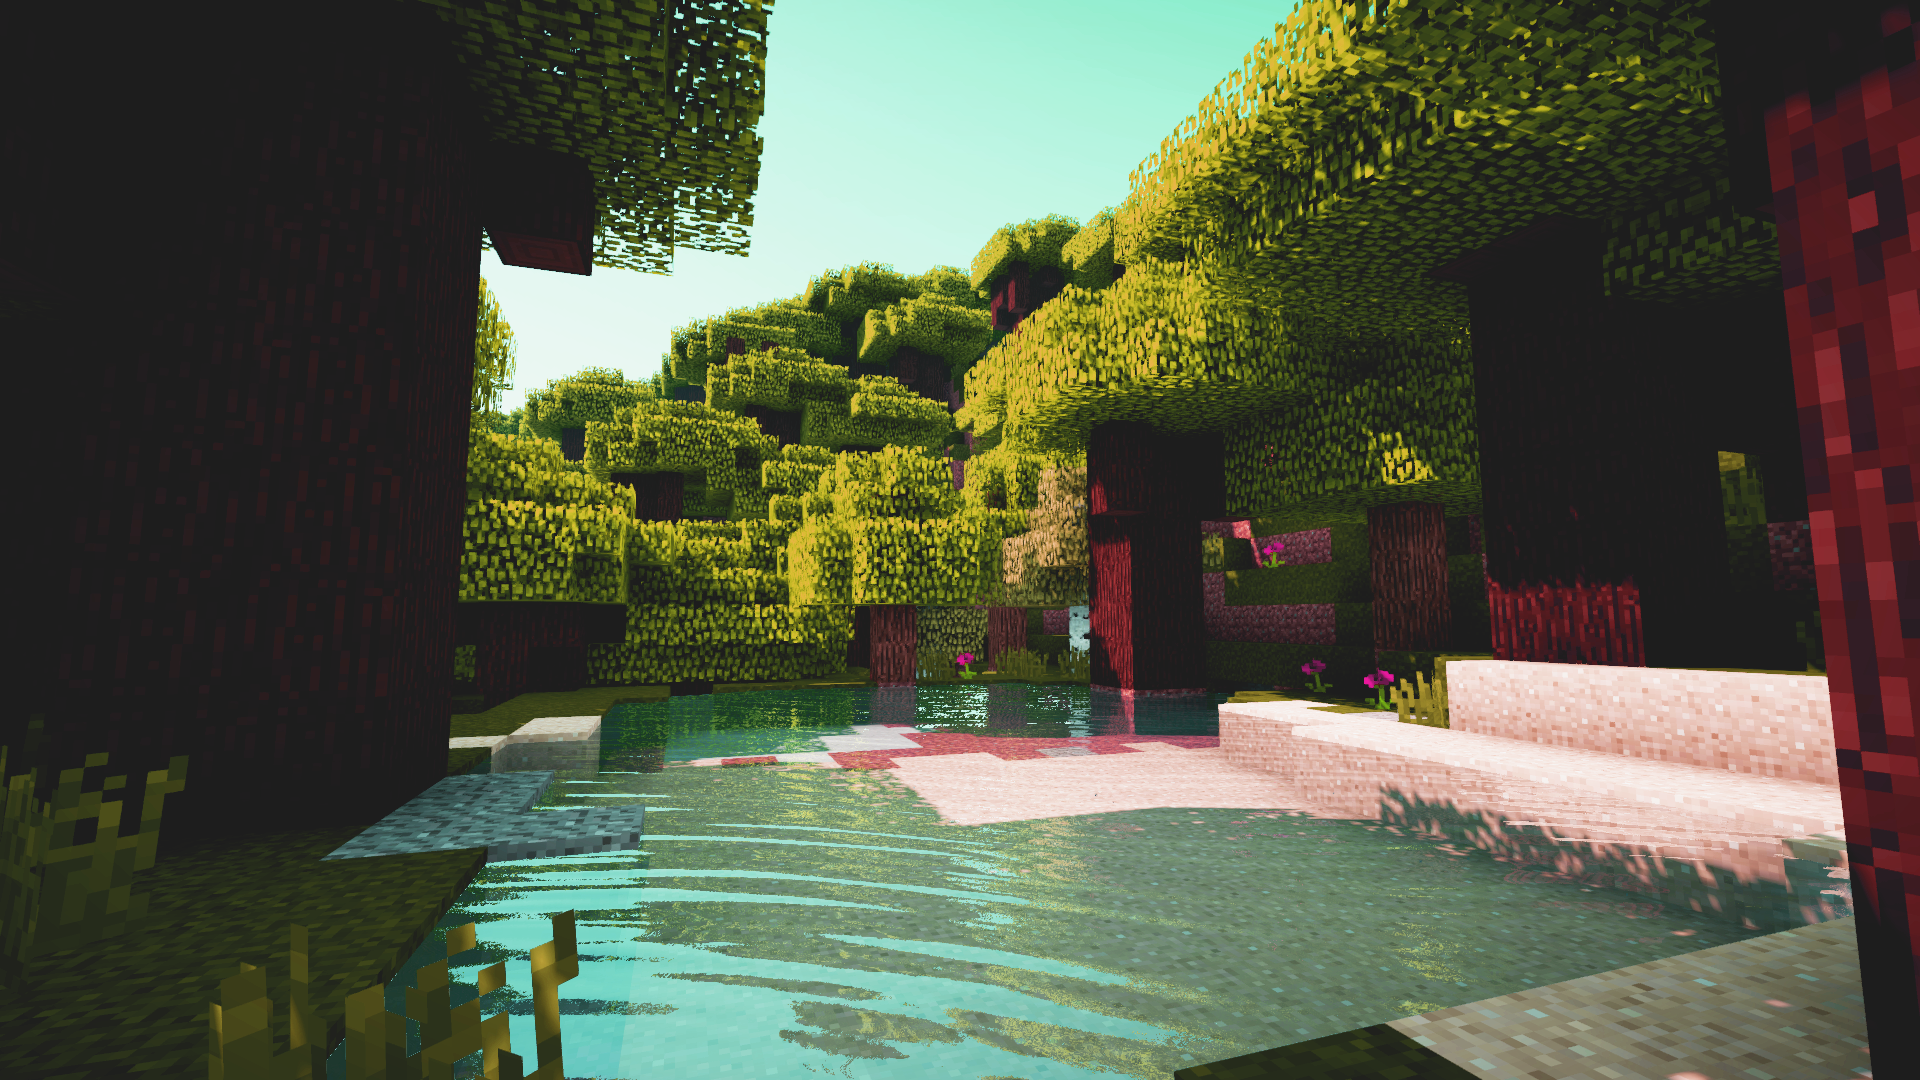 Minecraft Shaders Screenshot (Edited) [1920x1080